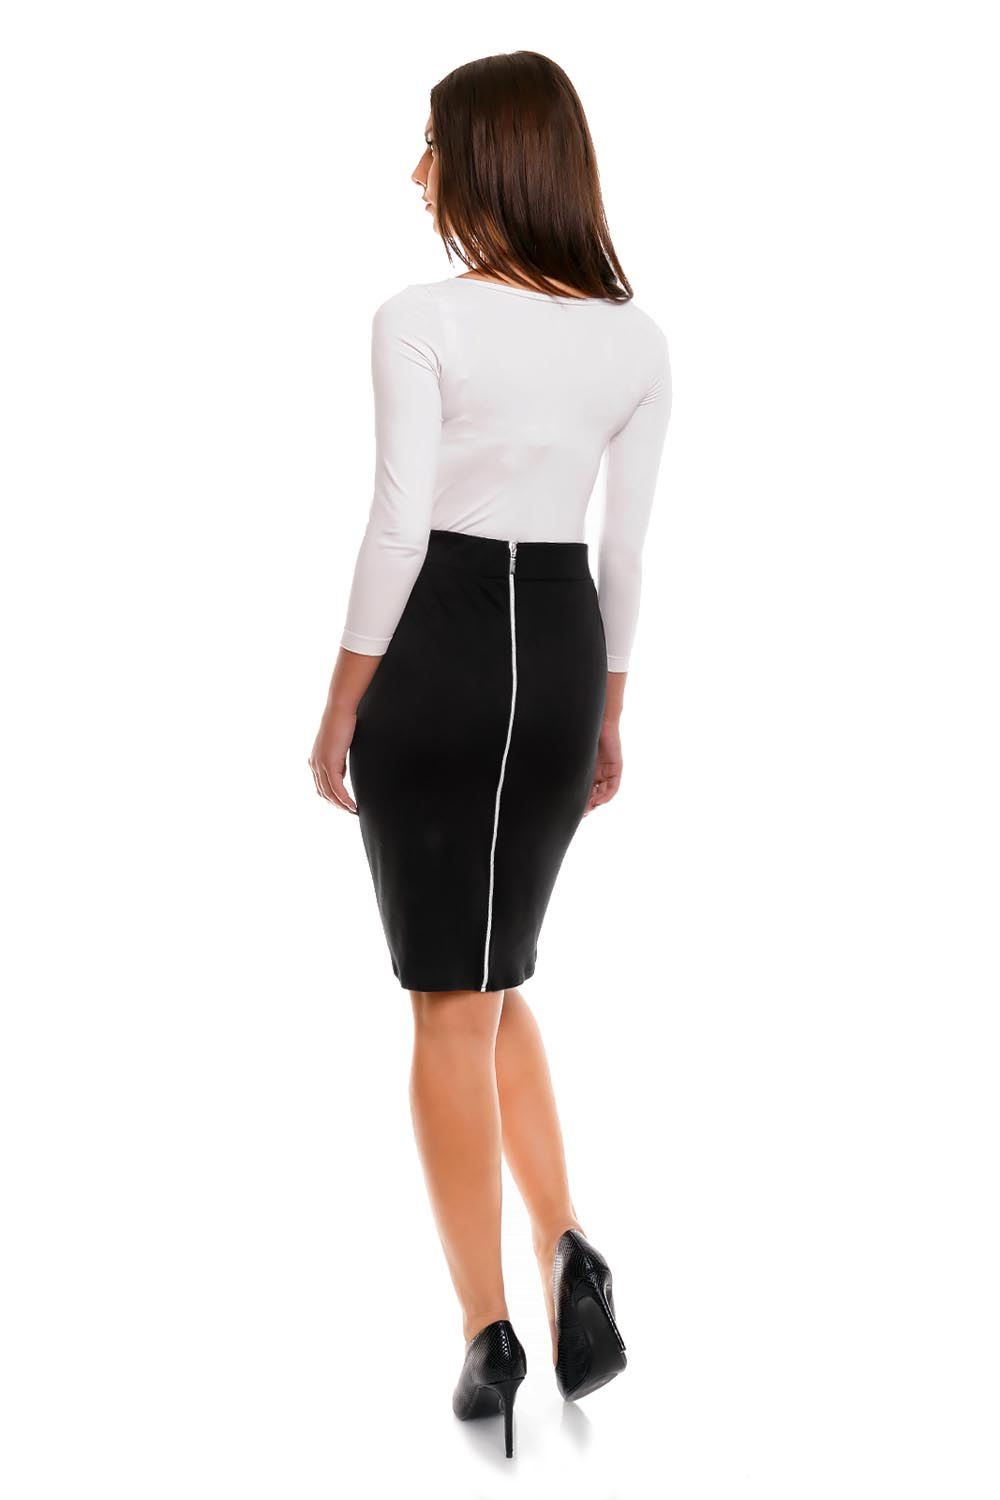 Black Pencil Skirt with Back Zipper Fastening dcf1f70dd